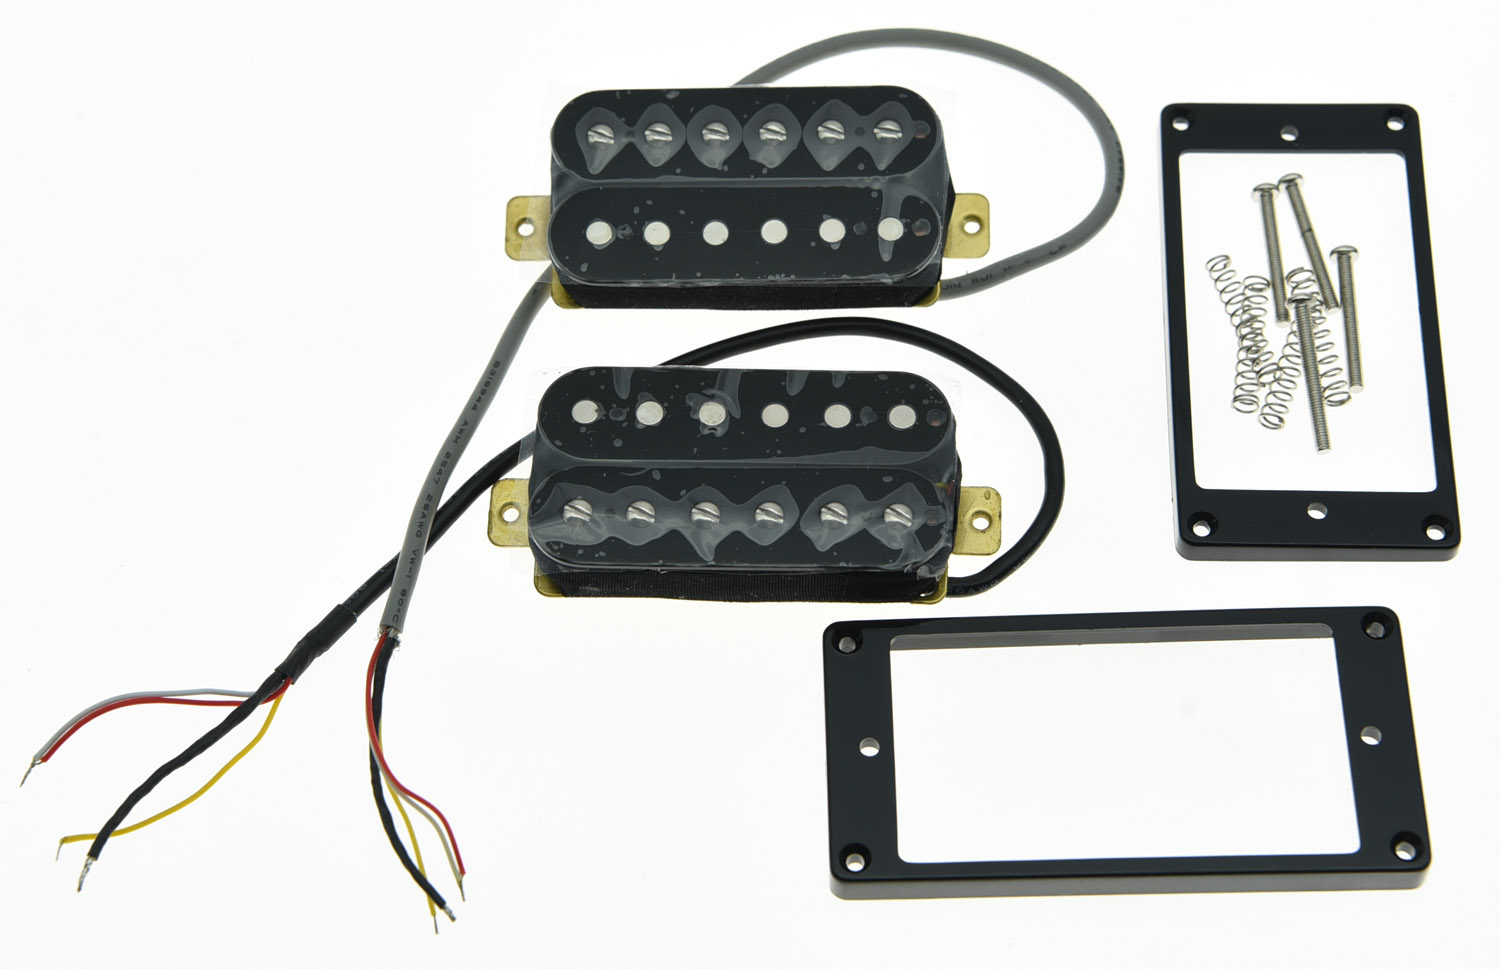 KAISH Set of 2 Black Alnico V Guitar Humbucker Neck&Bridge Pickup Power Sound Pickups new humbucker pickup set gold four conductor wires alnico v pickups